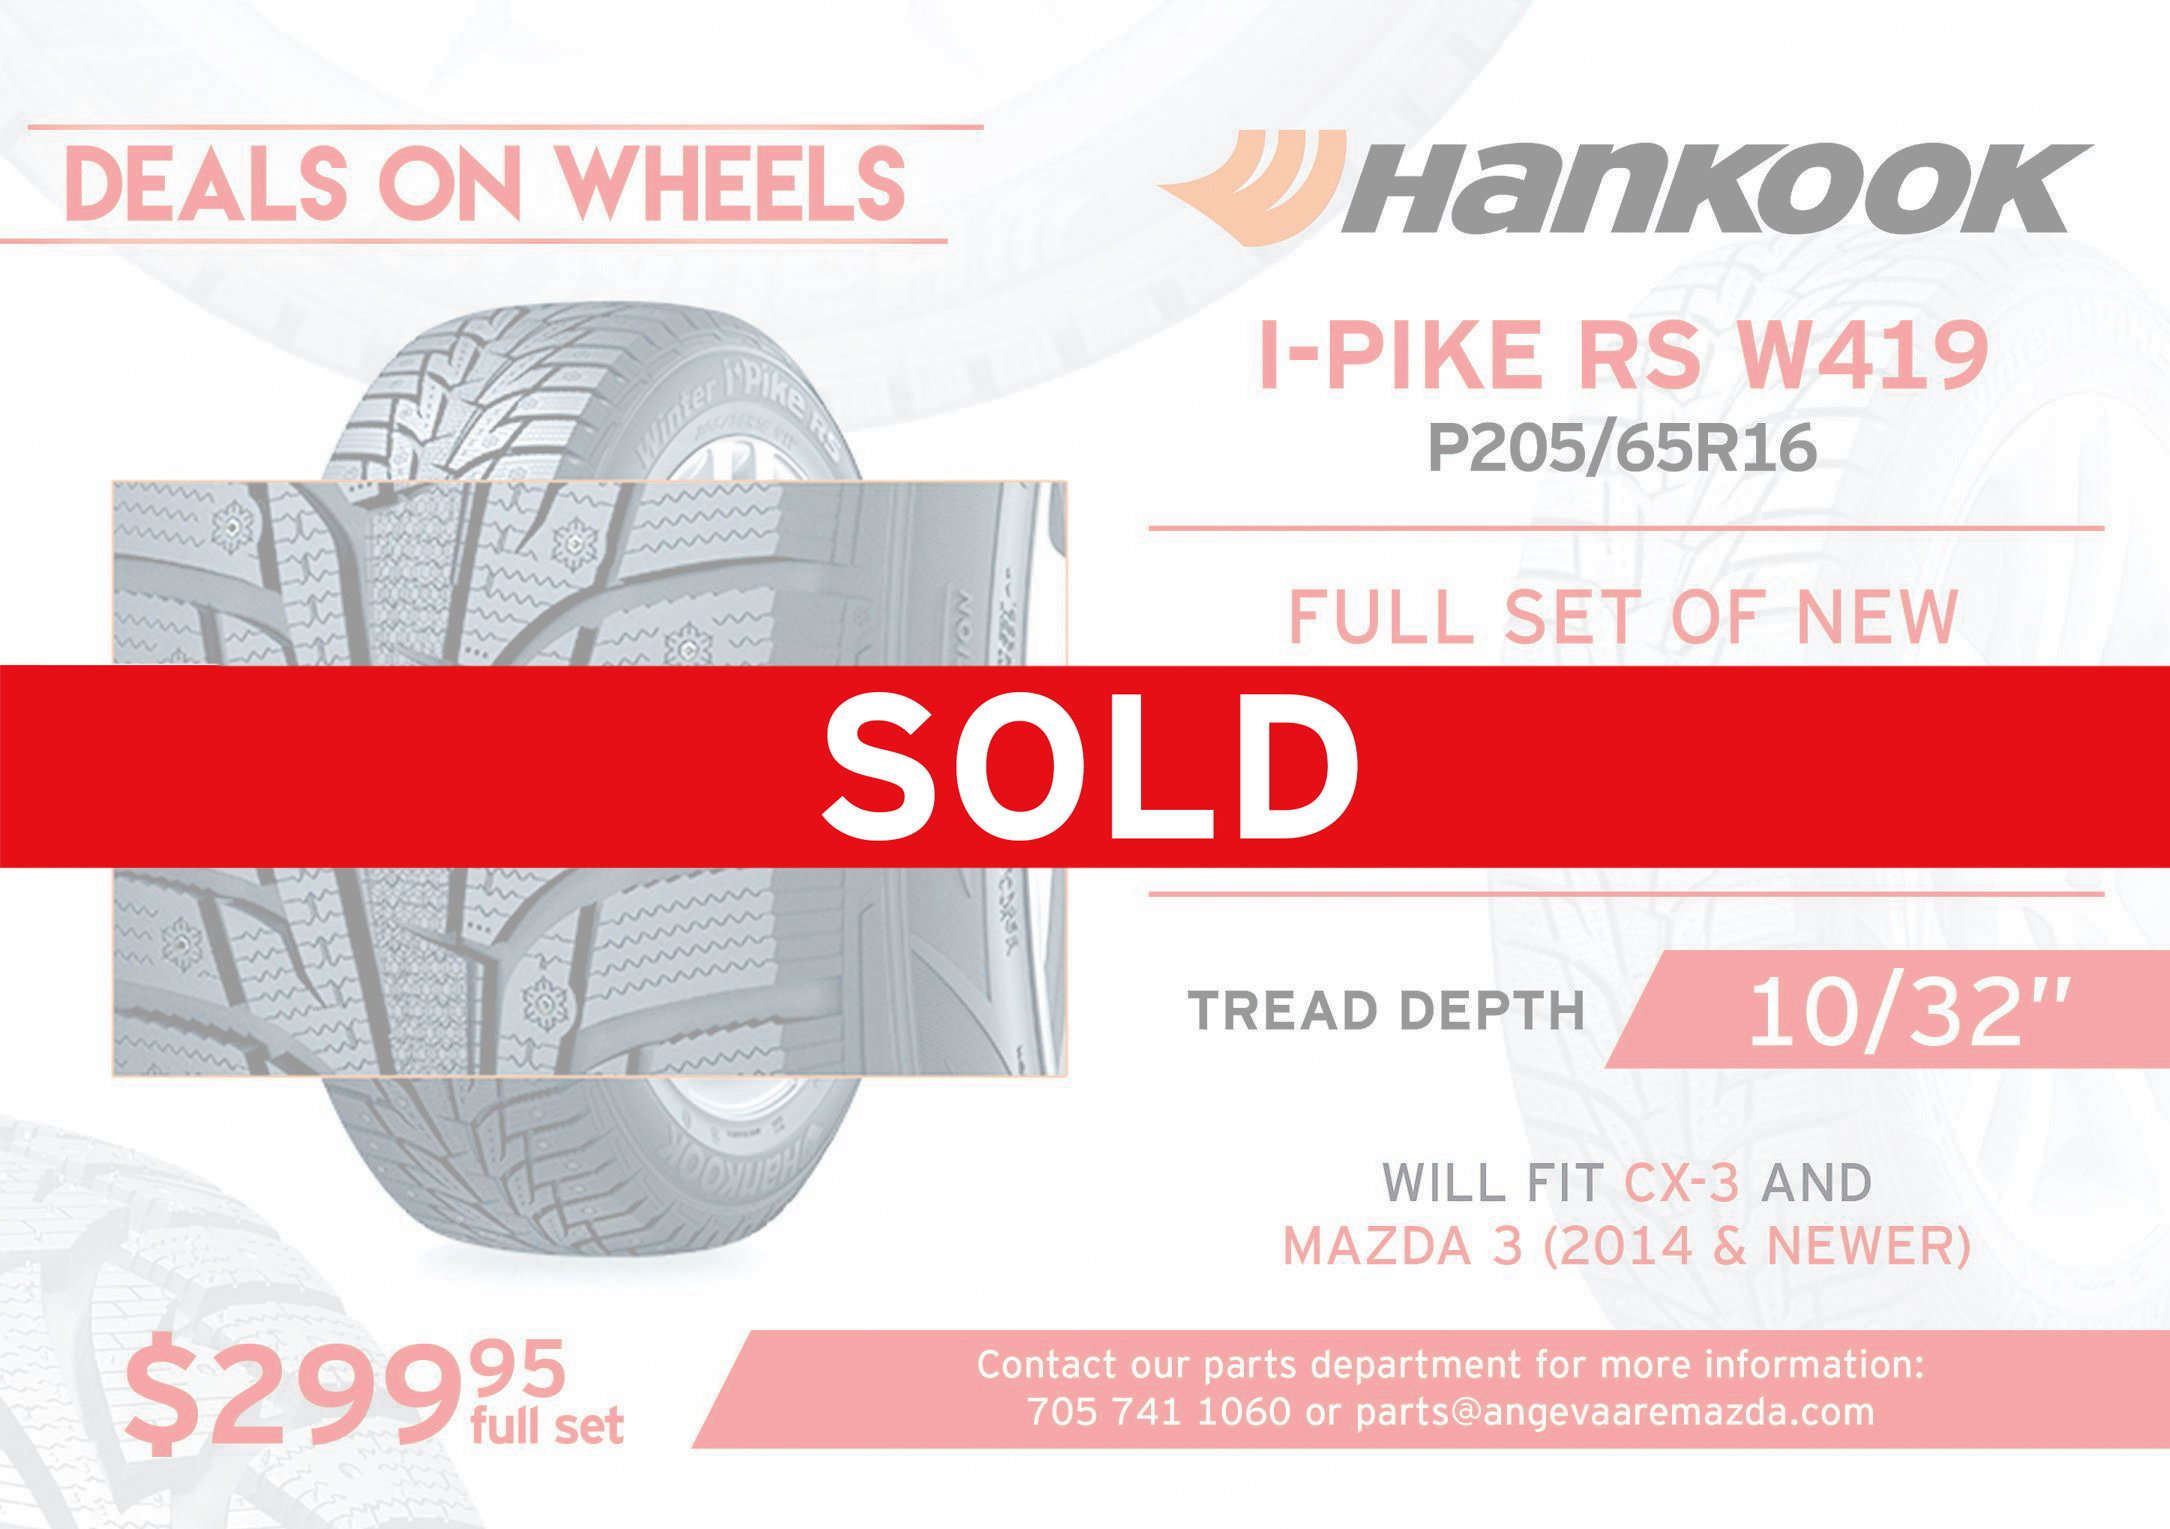 Hankook I-Pike RS W419 P205/65R16. A full set of new winter tires with no rims. Tread depth at 10/32